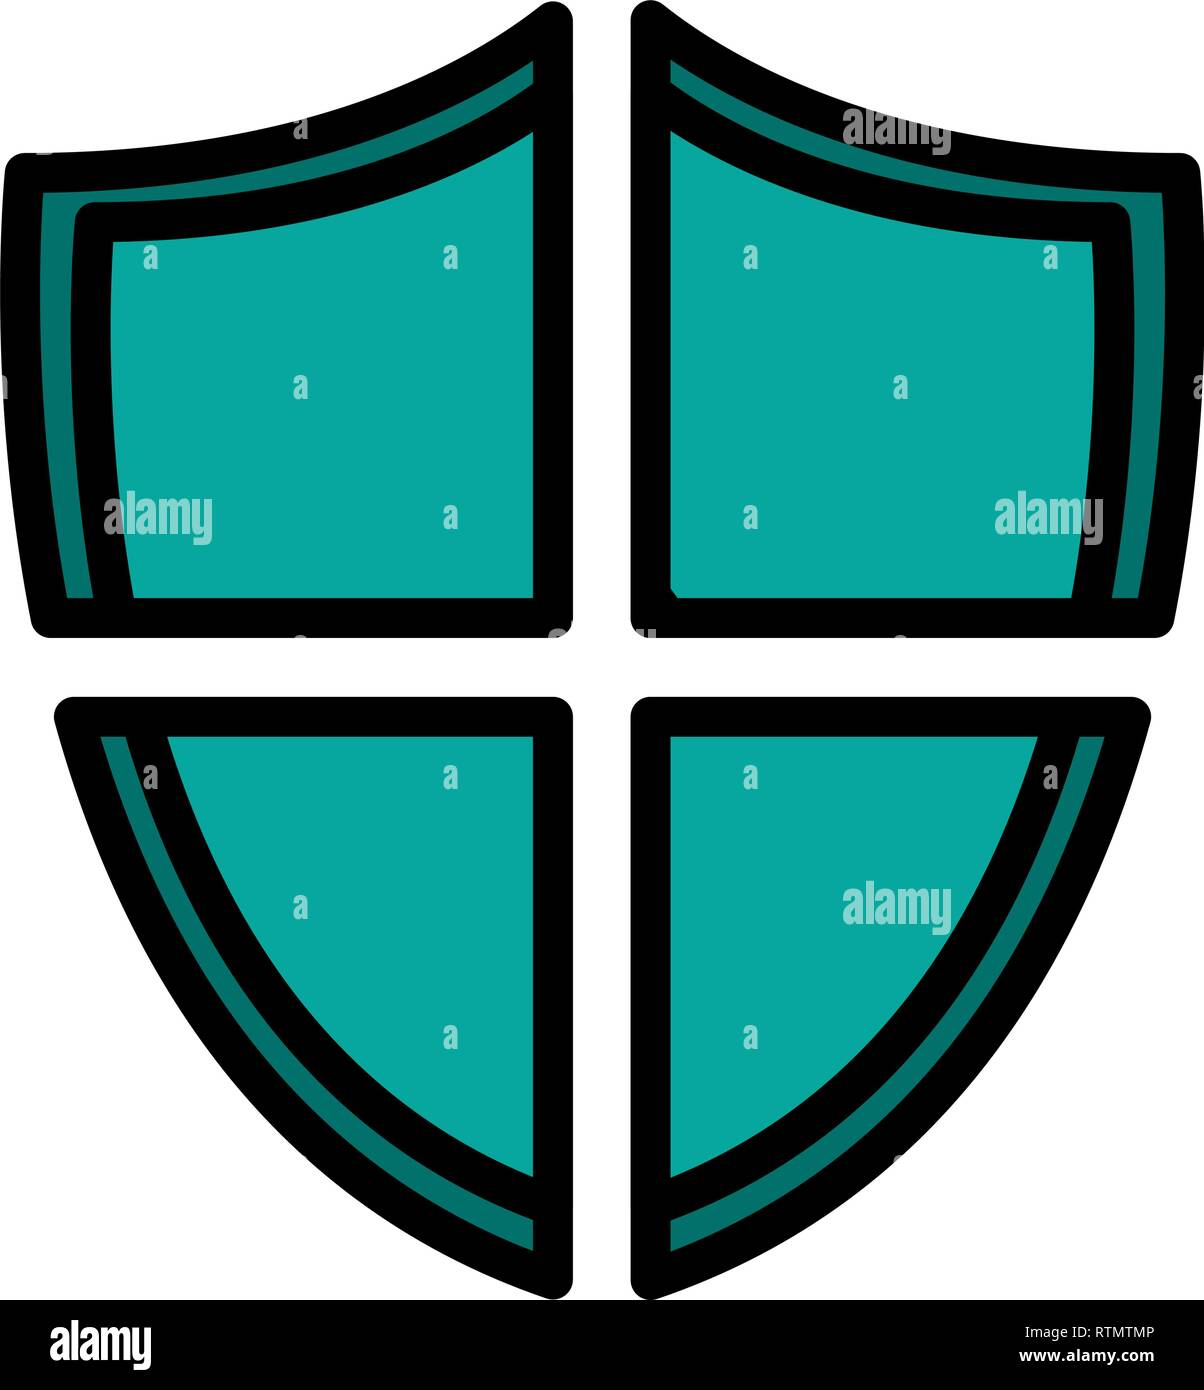 shield security isolated icon vector illustration design - Stock Image